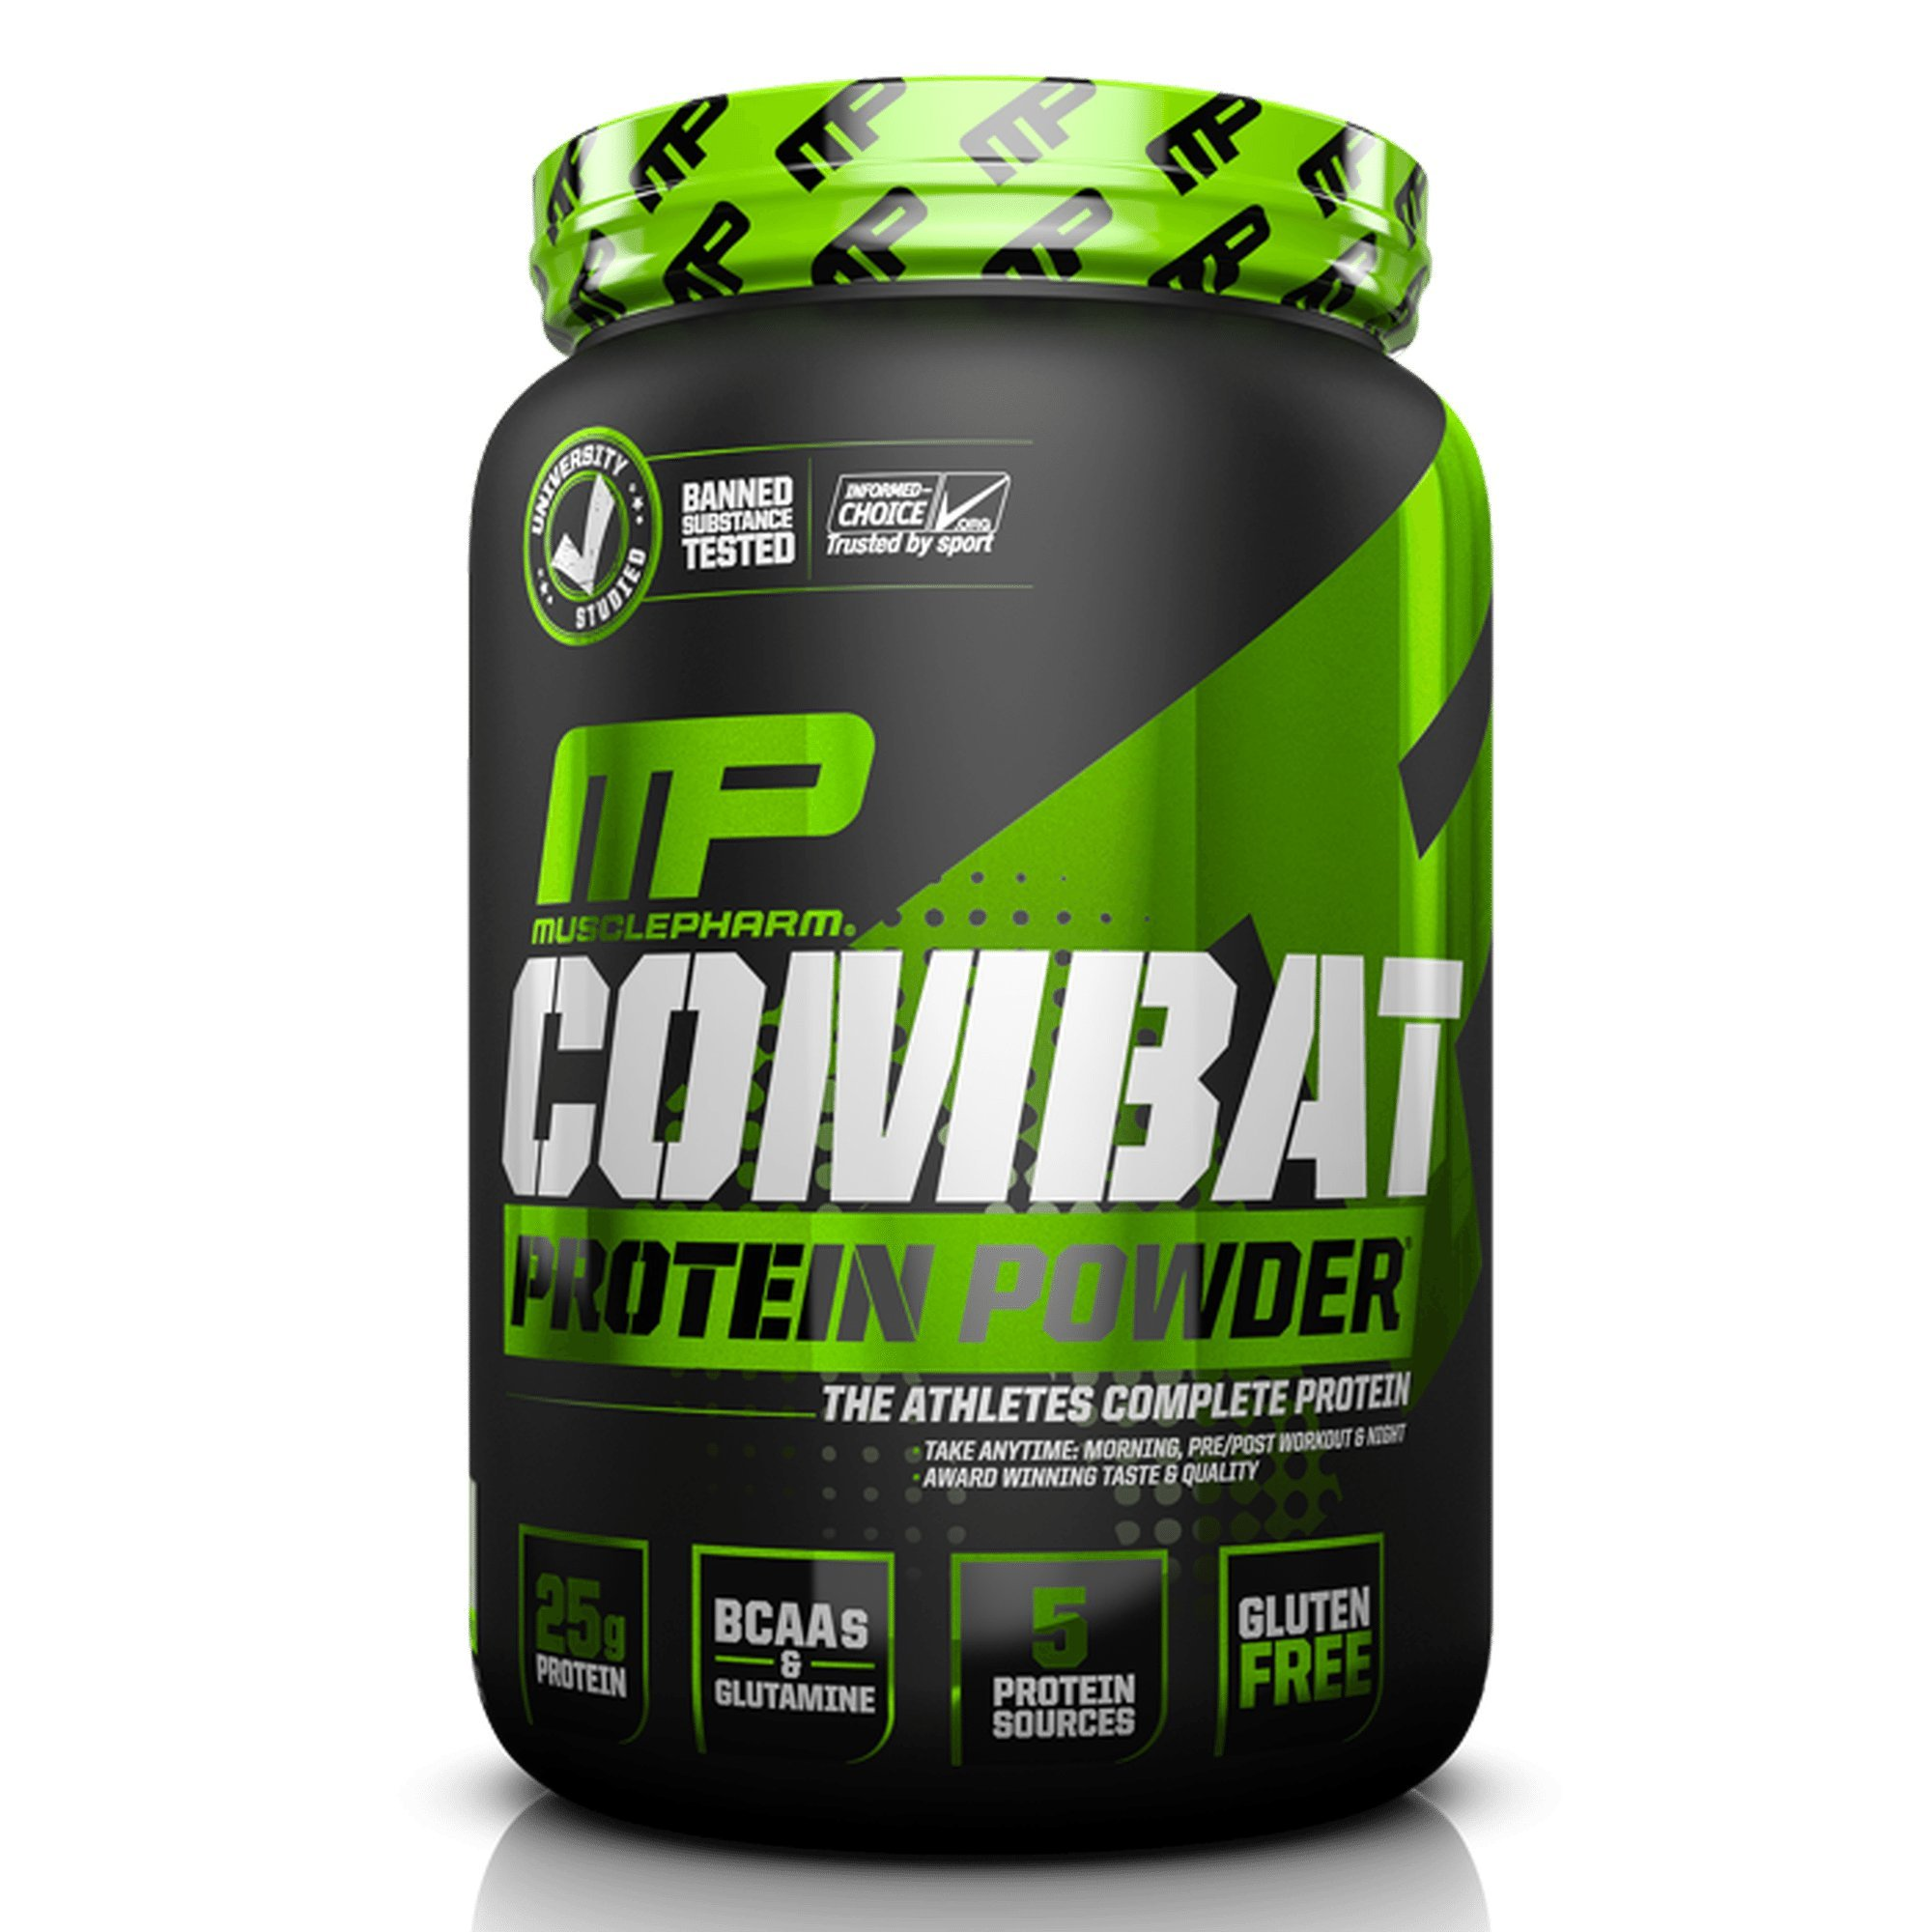 MusclePharm Combat Protein Powder, Essential Whey Protein Powder, Isolate Whey Protein, Casein and Egg Protein with BCAAs and Glutamine for Recovery, Vanilla, 2-Pound, 26 Servings by MusclePharm